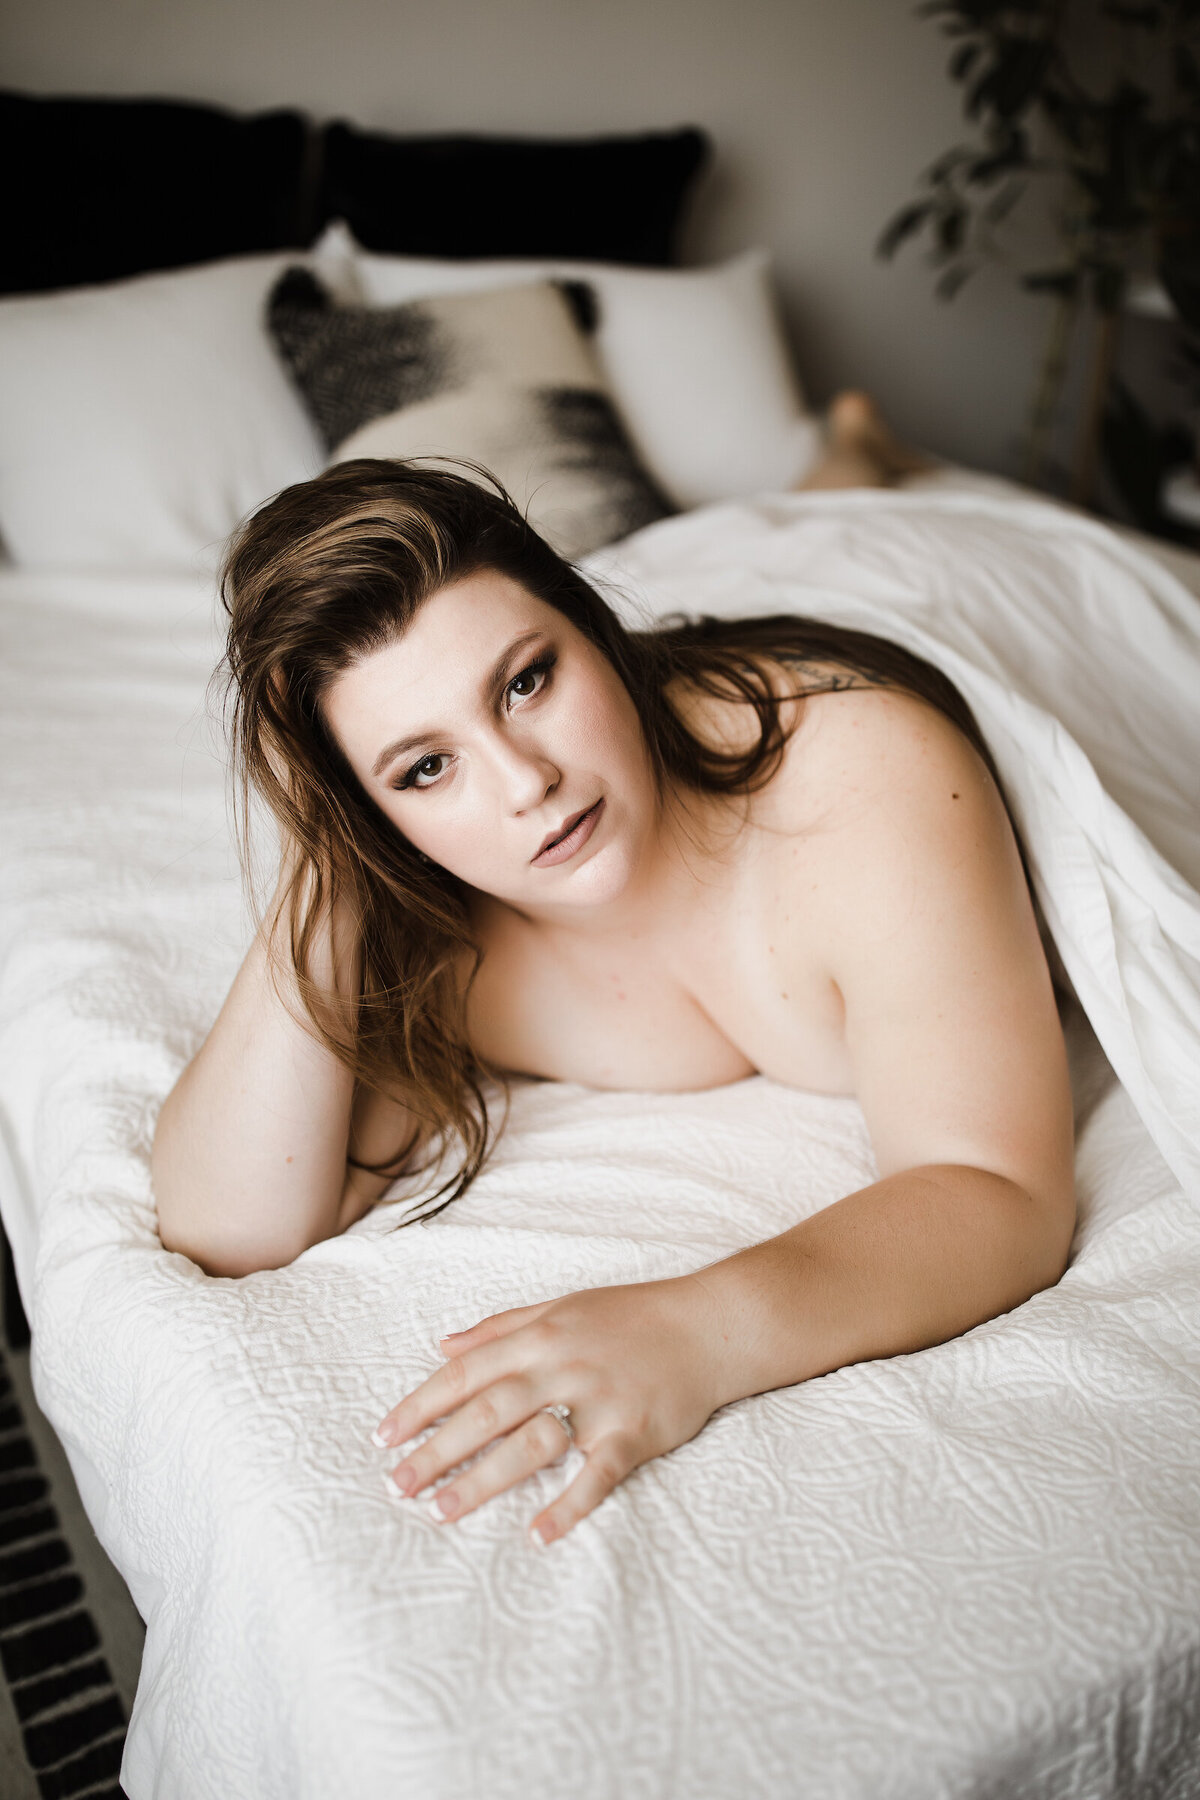 Desirae_BoudoirSession-114